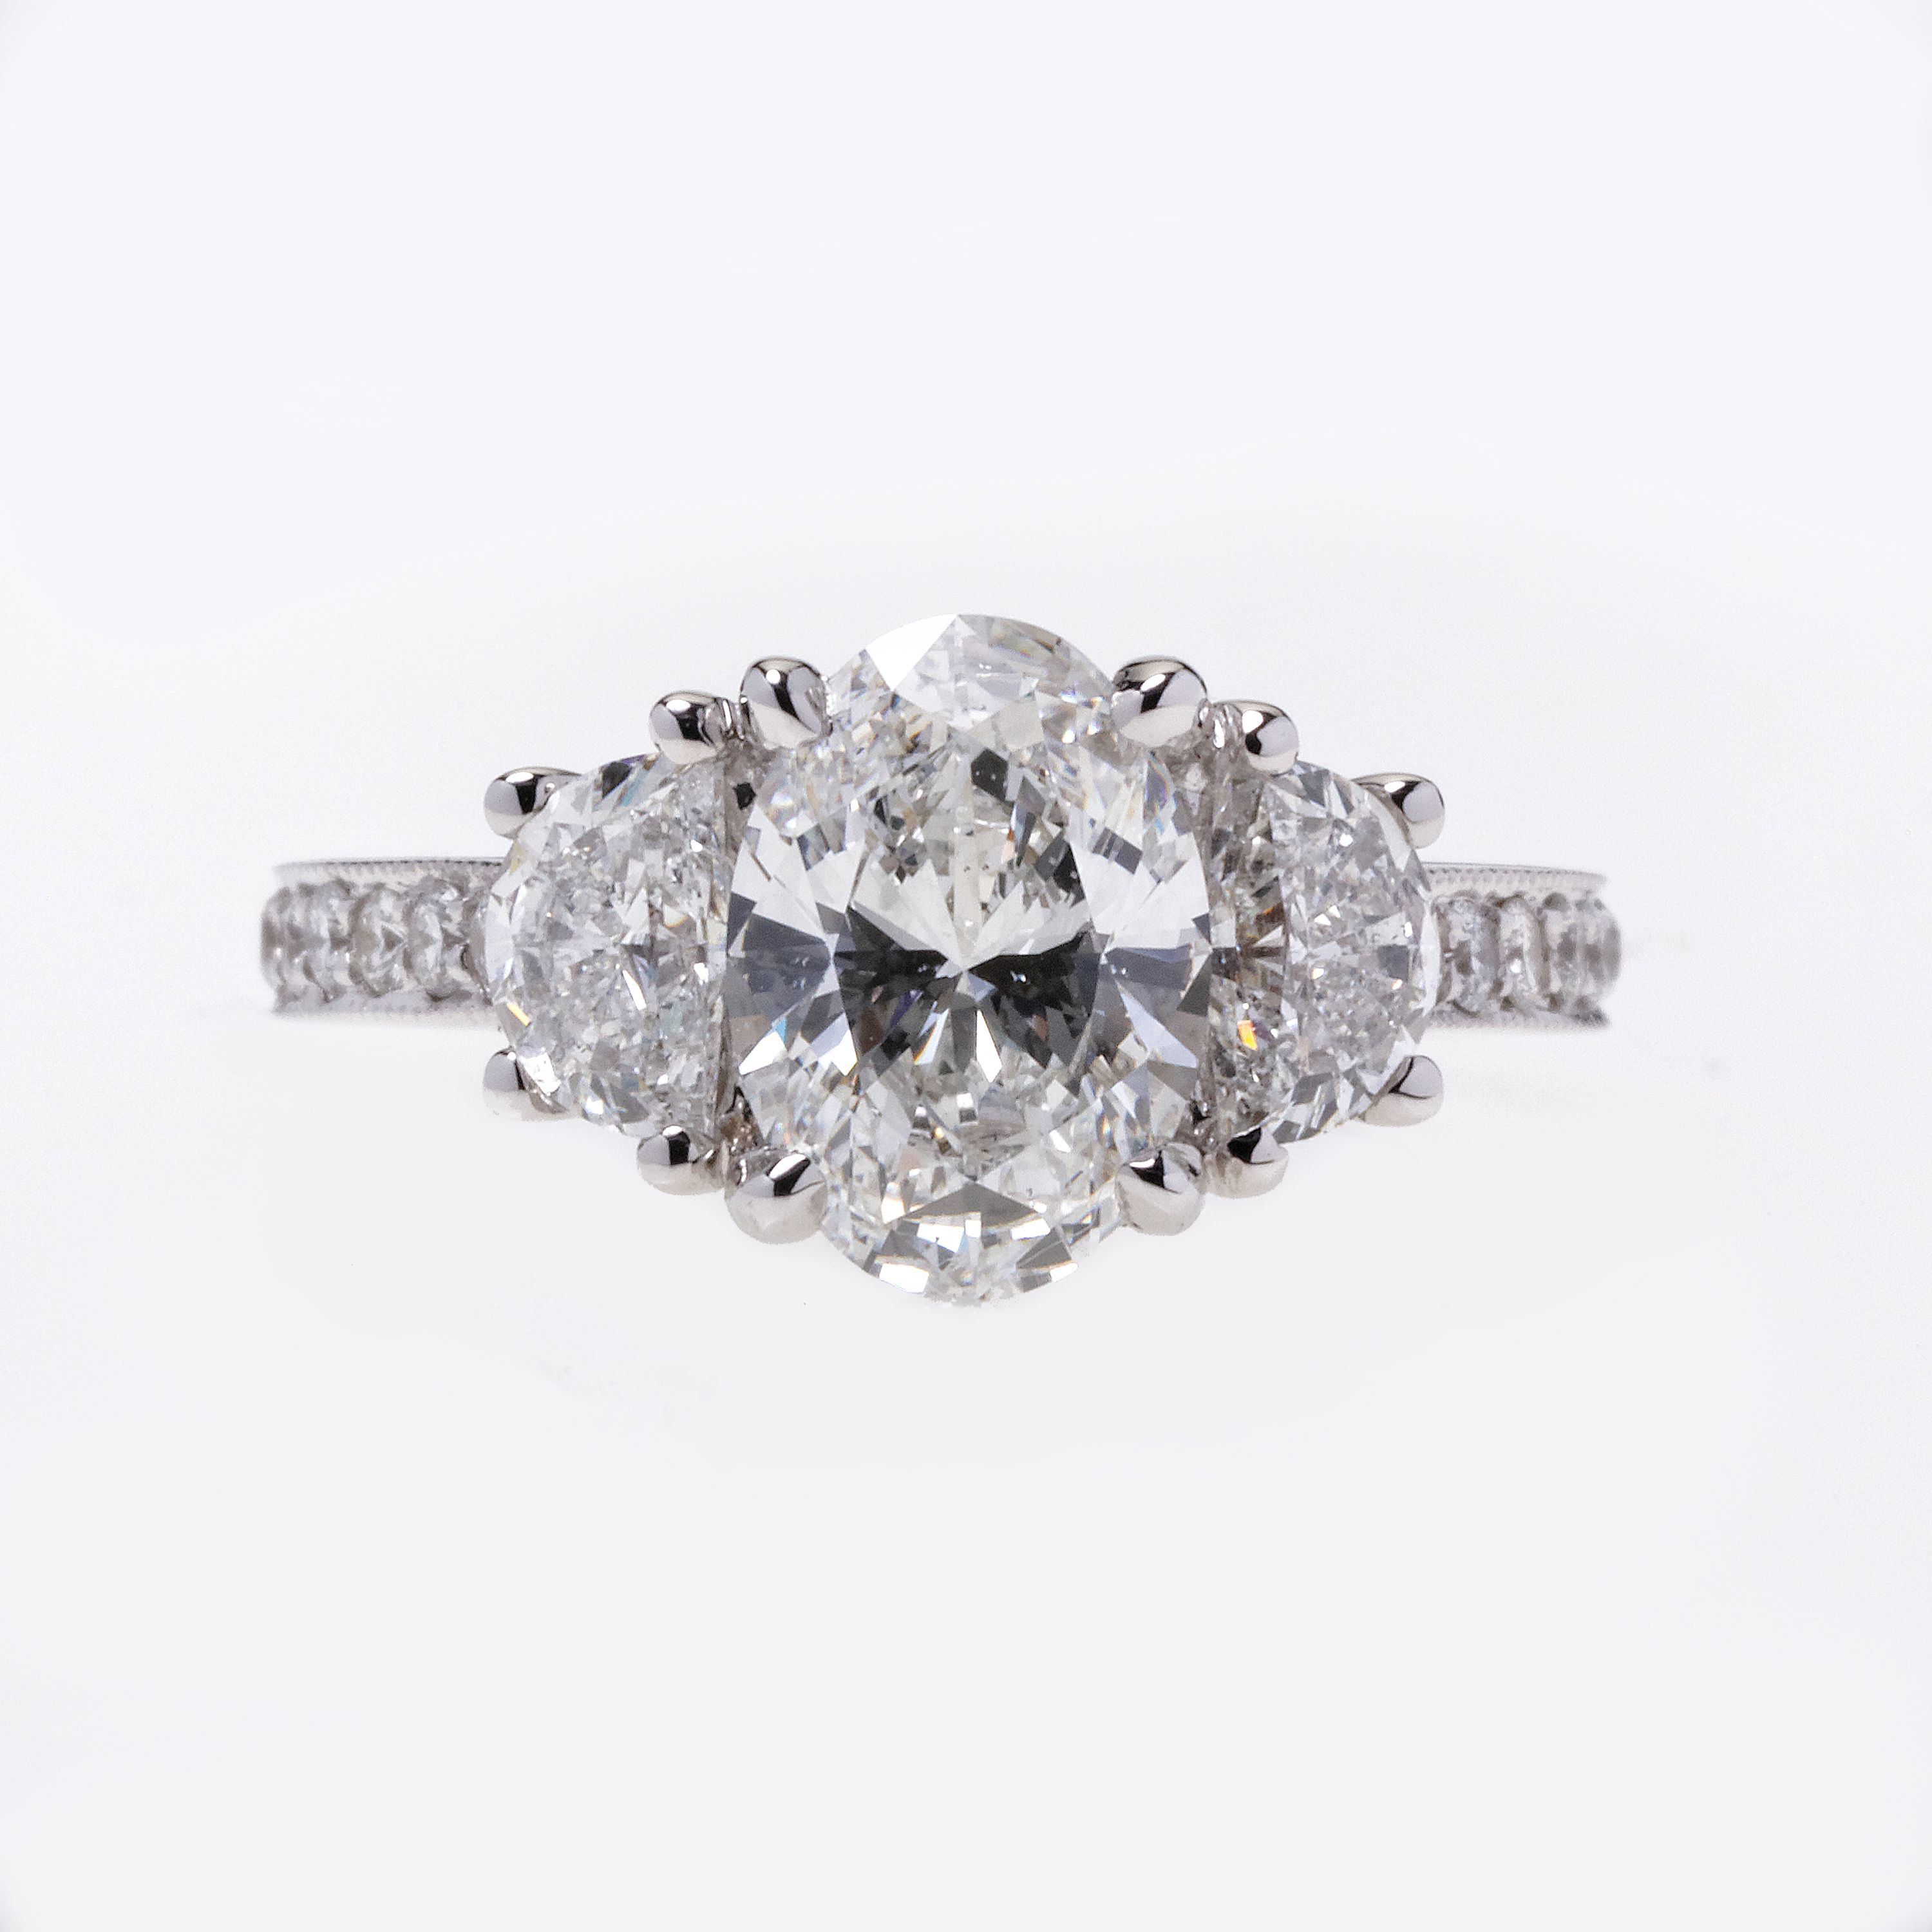 Engagement Rings Boudreaux s Jewelers Rings